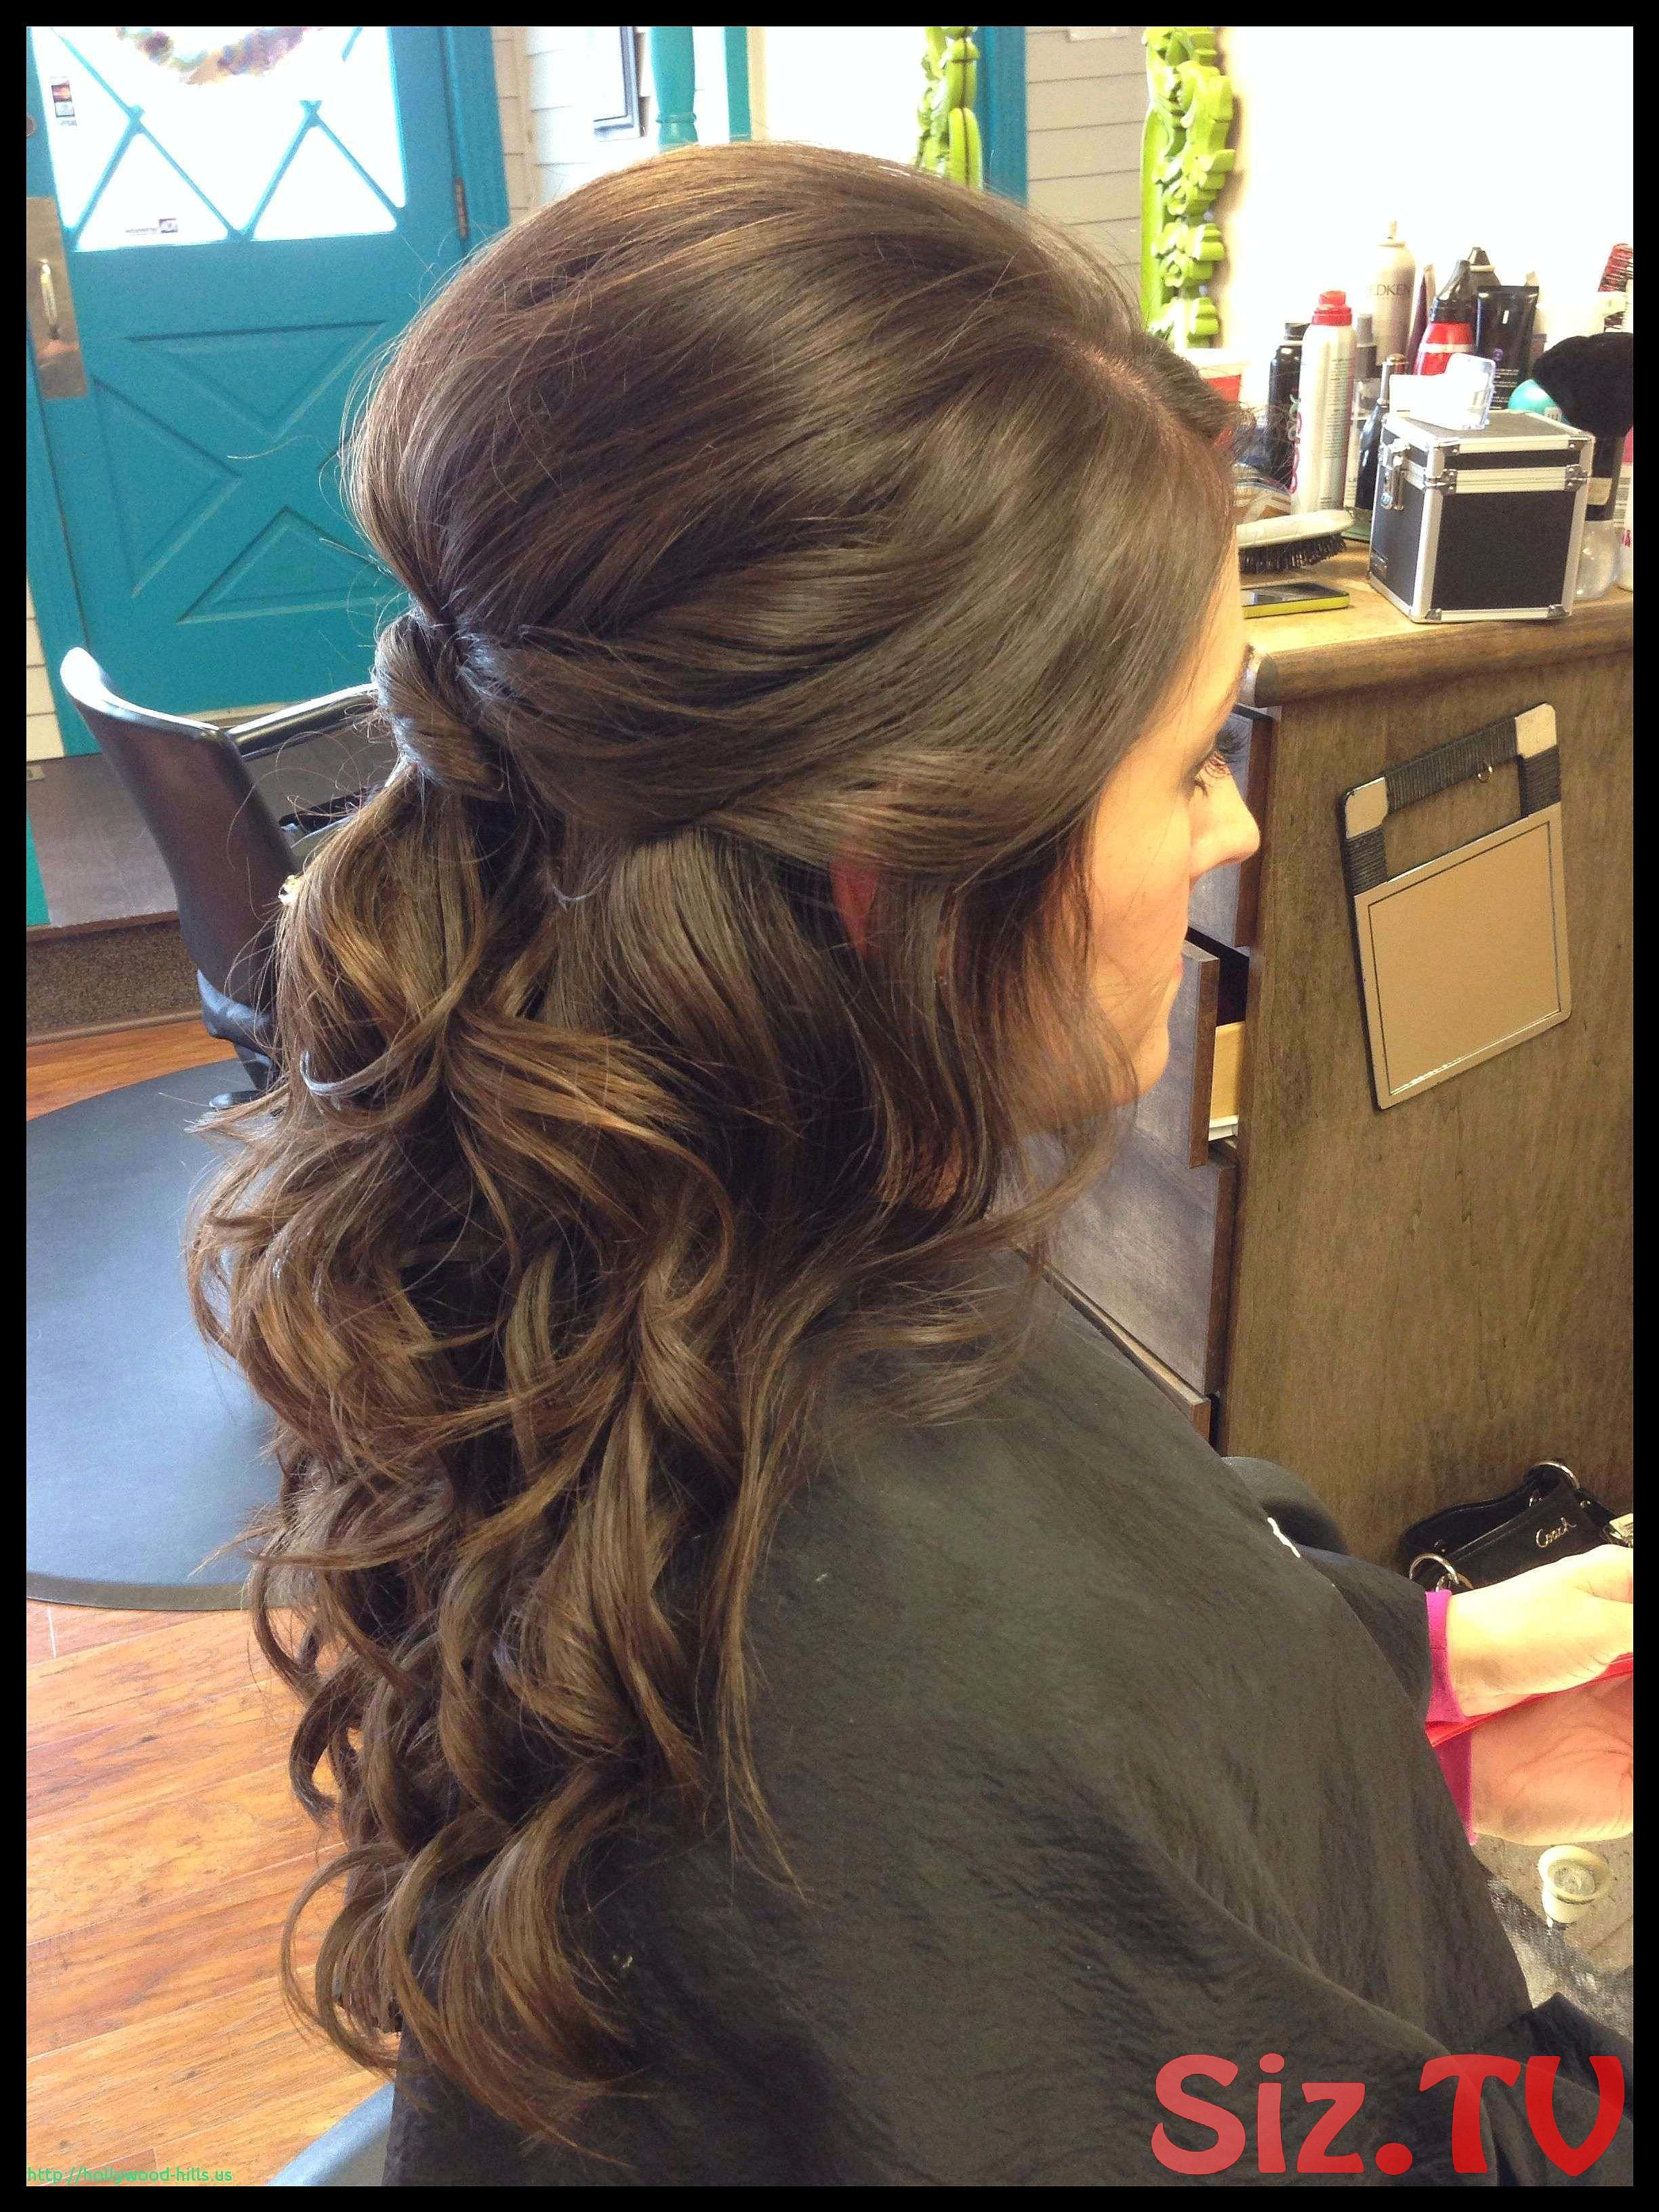 Half Updos For Long Hair New Half Updo Hairstyles Pinterest Gallery Half Updos For Long Hair New Half Up Straight Wedding Hair Elegant Wedding Hair Hair Styles